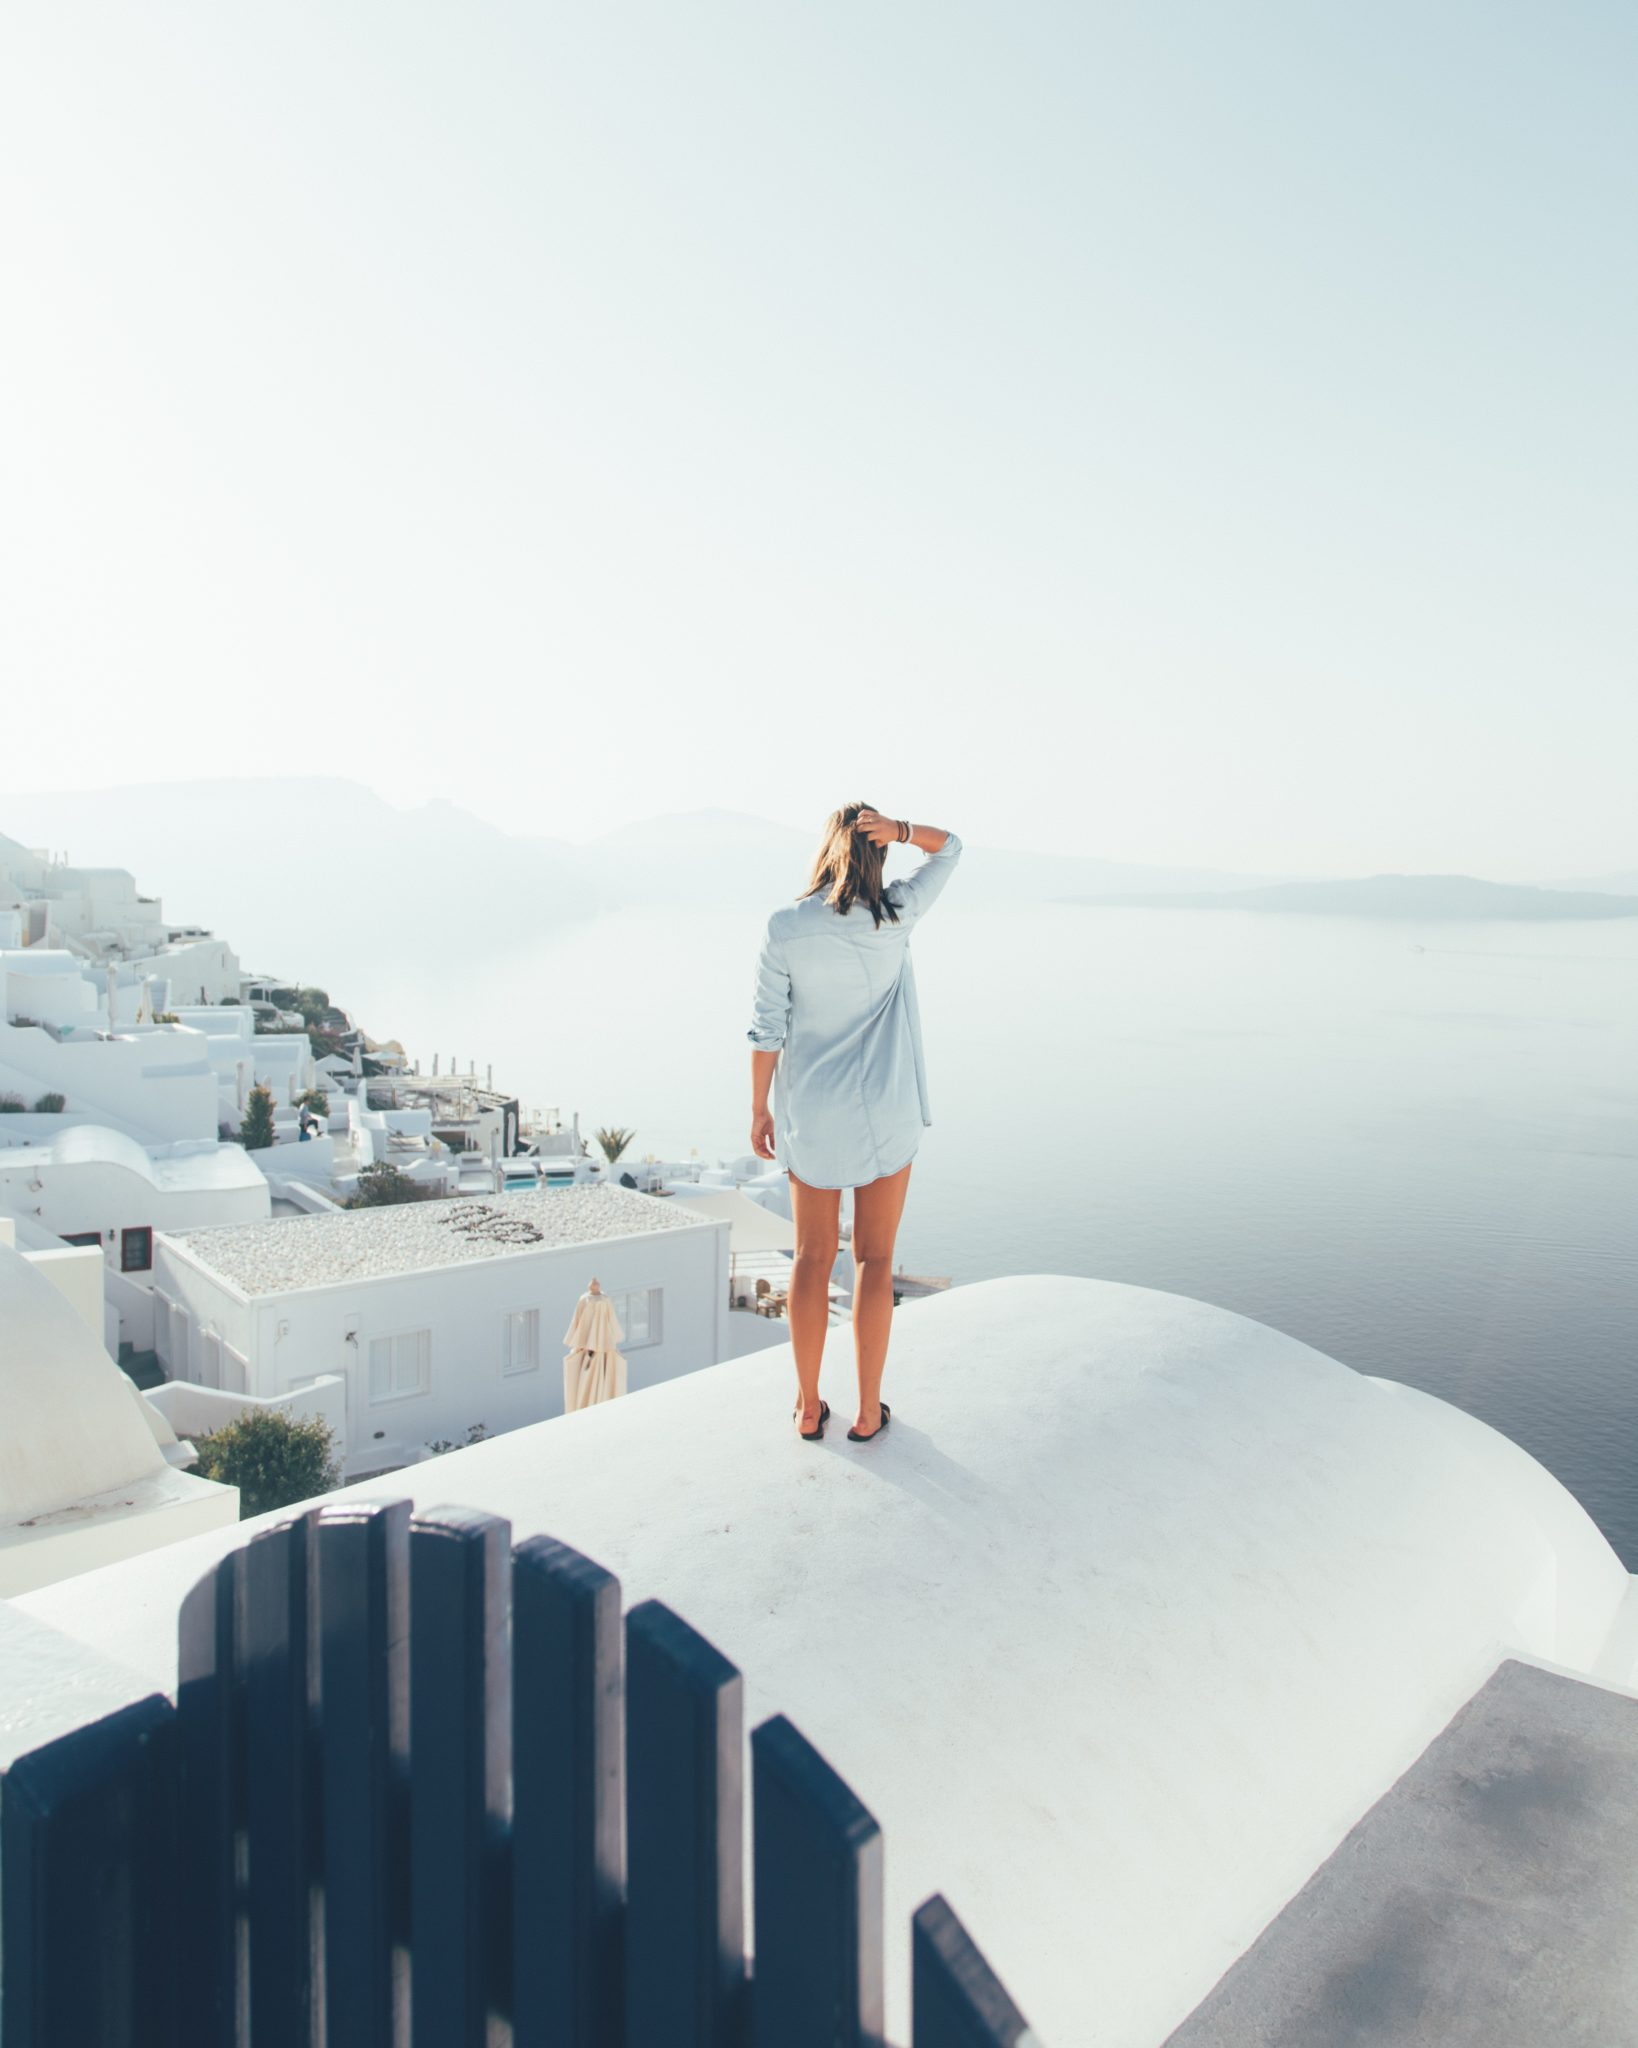 woman standing on top of building in santorini